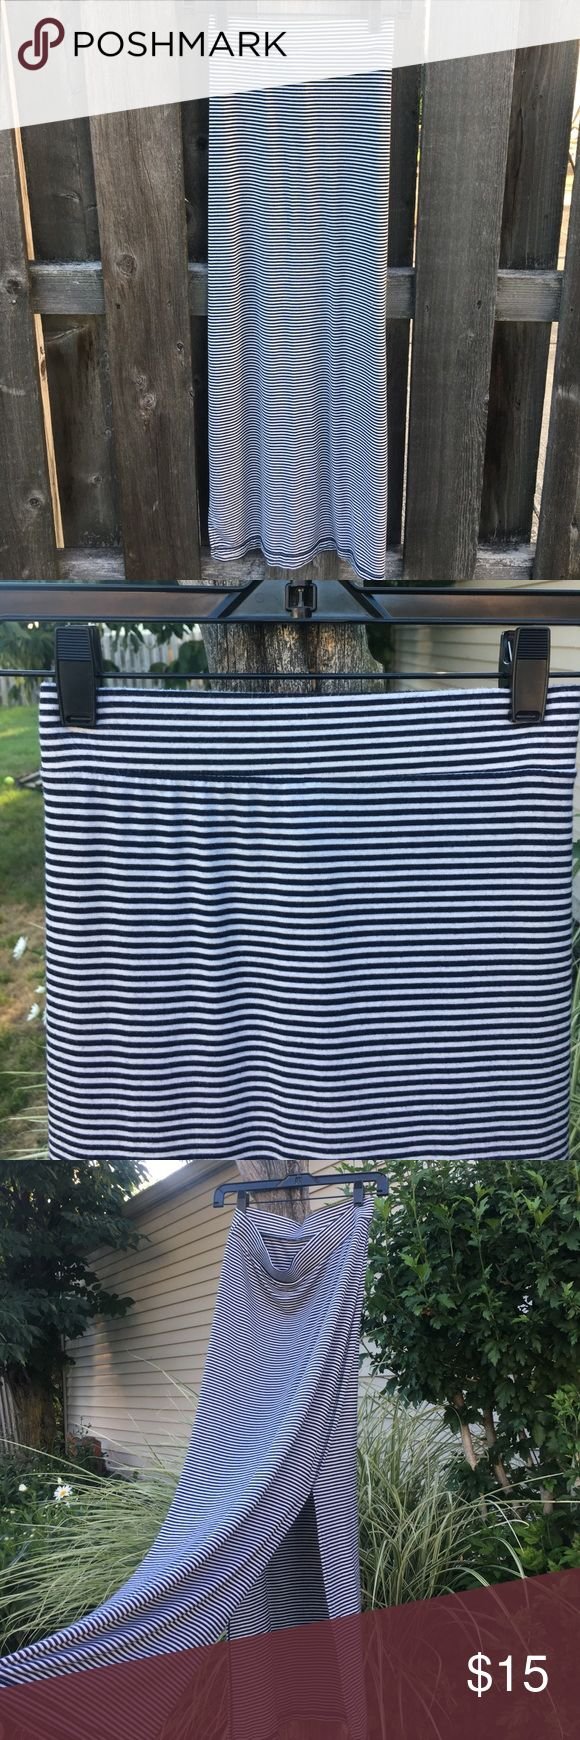 Old Navy Dark Blue and White Stripped Maxi Skirt Size small, Knit maxi skirt from Old Navy with a slit down each side. No stains or rips. Length is approx. 38 inches. Length of slit is approx 18 inches (see picture). Old Navy Skirts Maxi